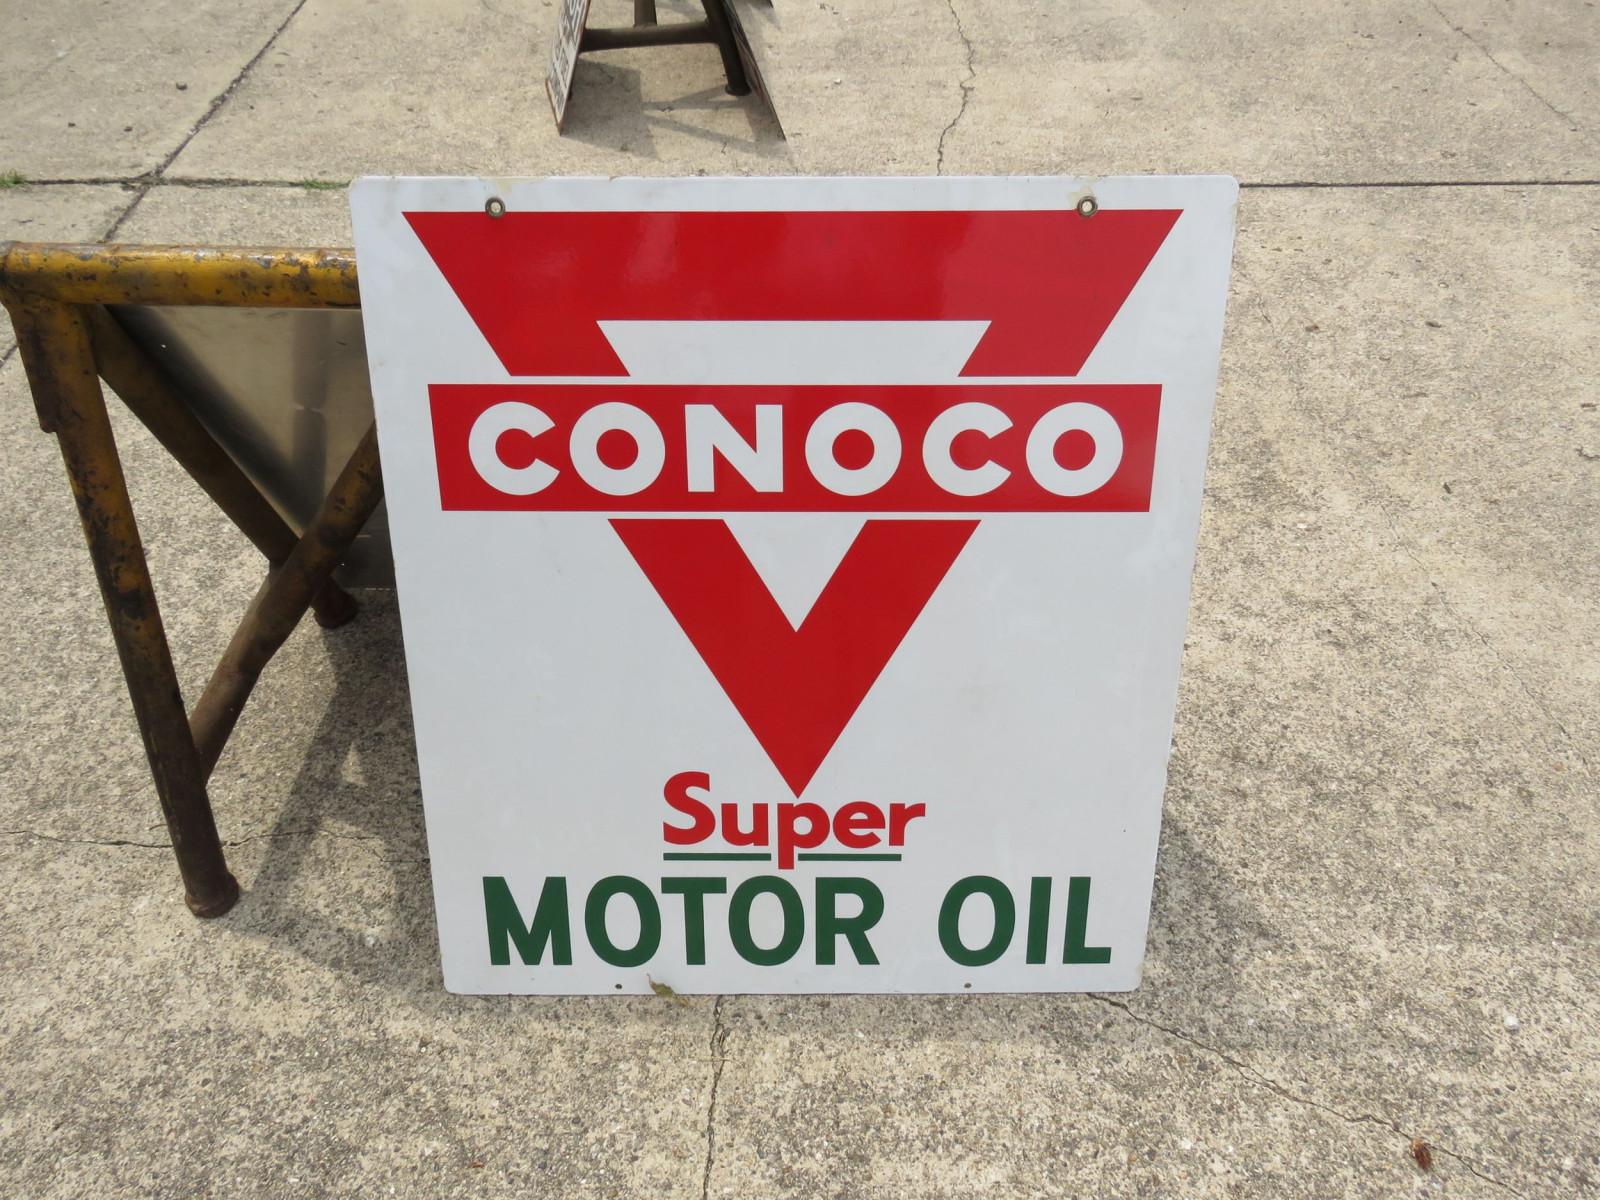 Conoco Super Motor Oil Porcelain sign - Image 2